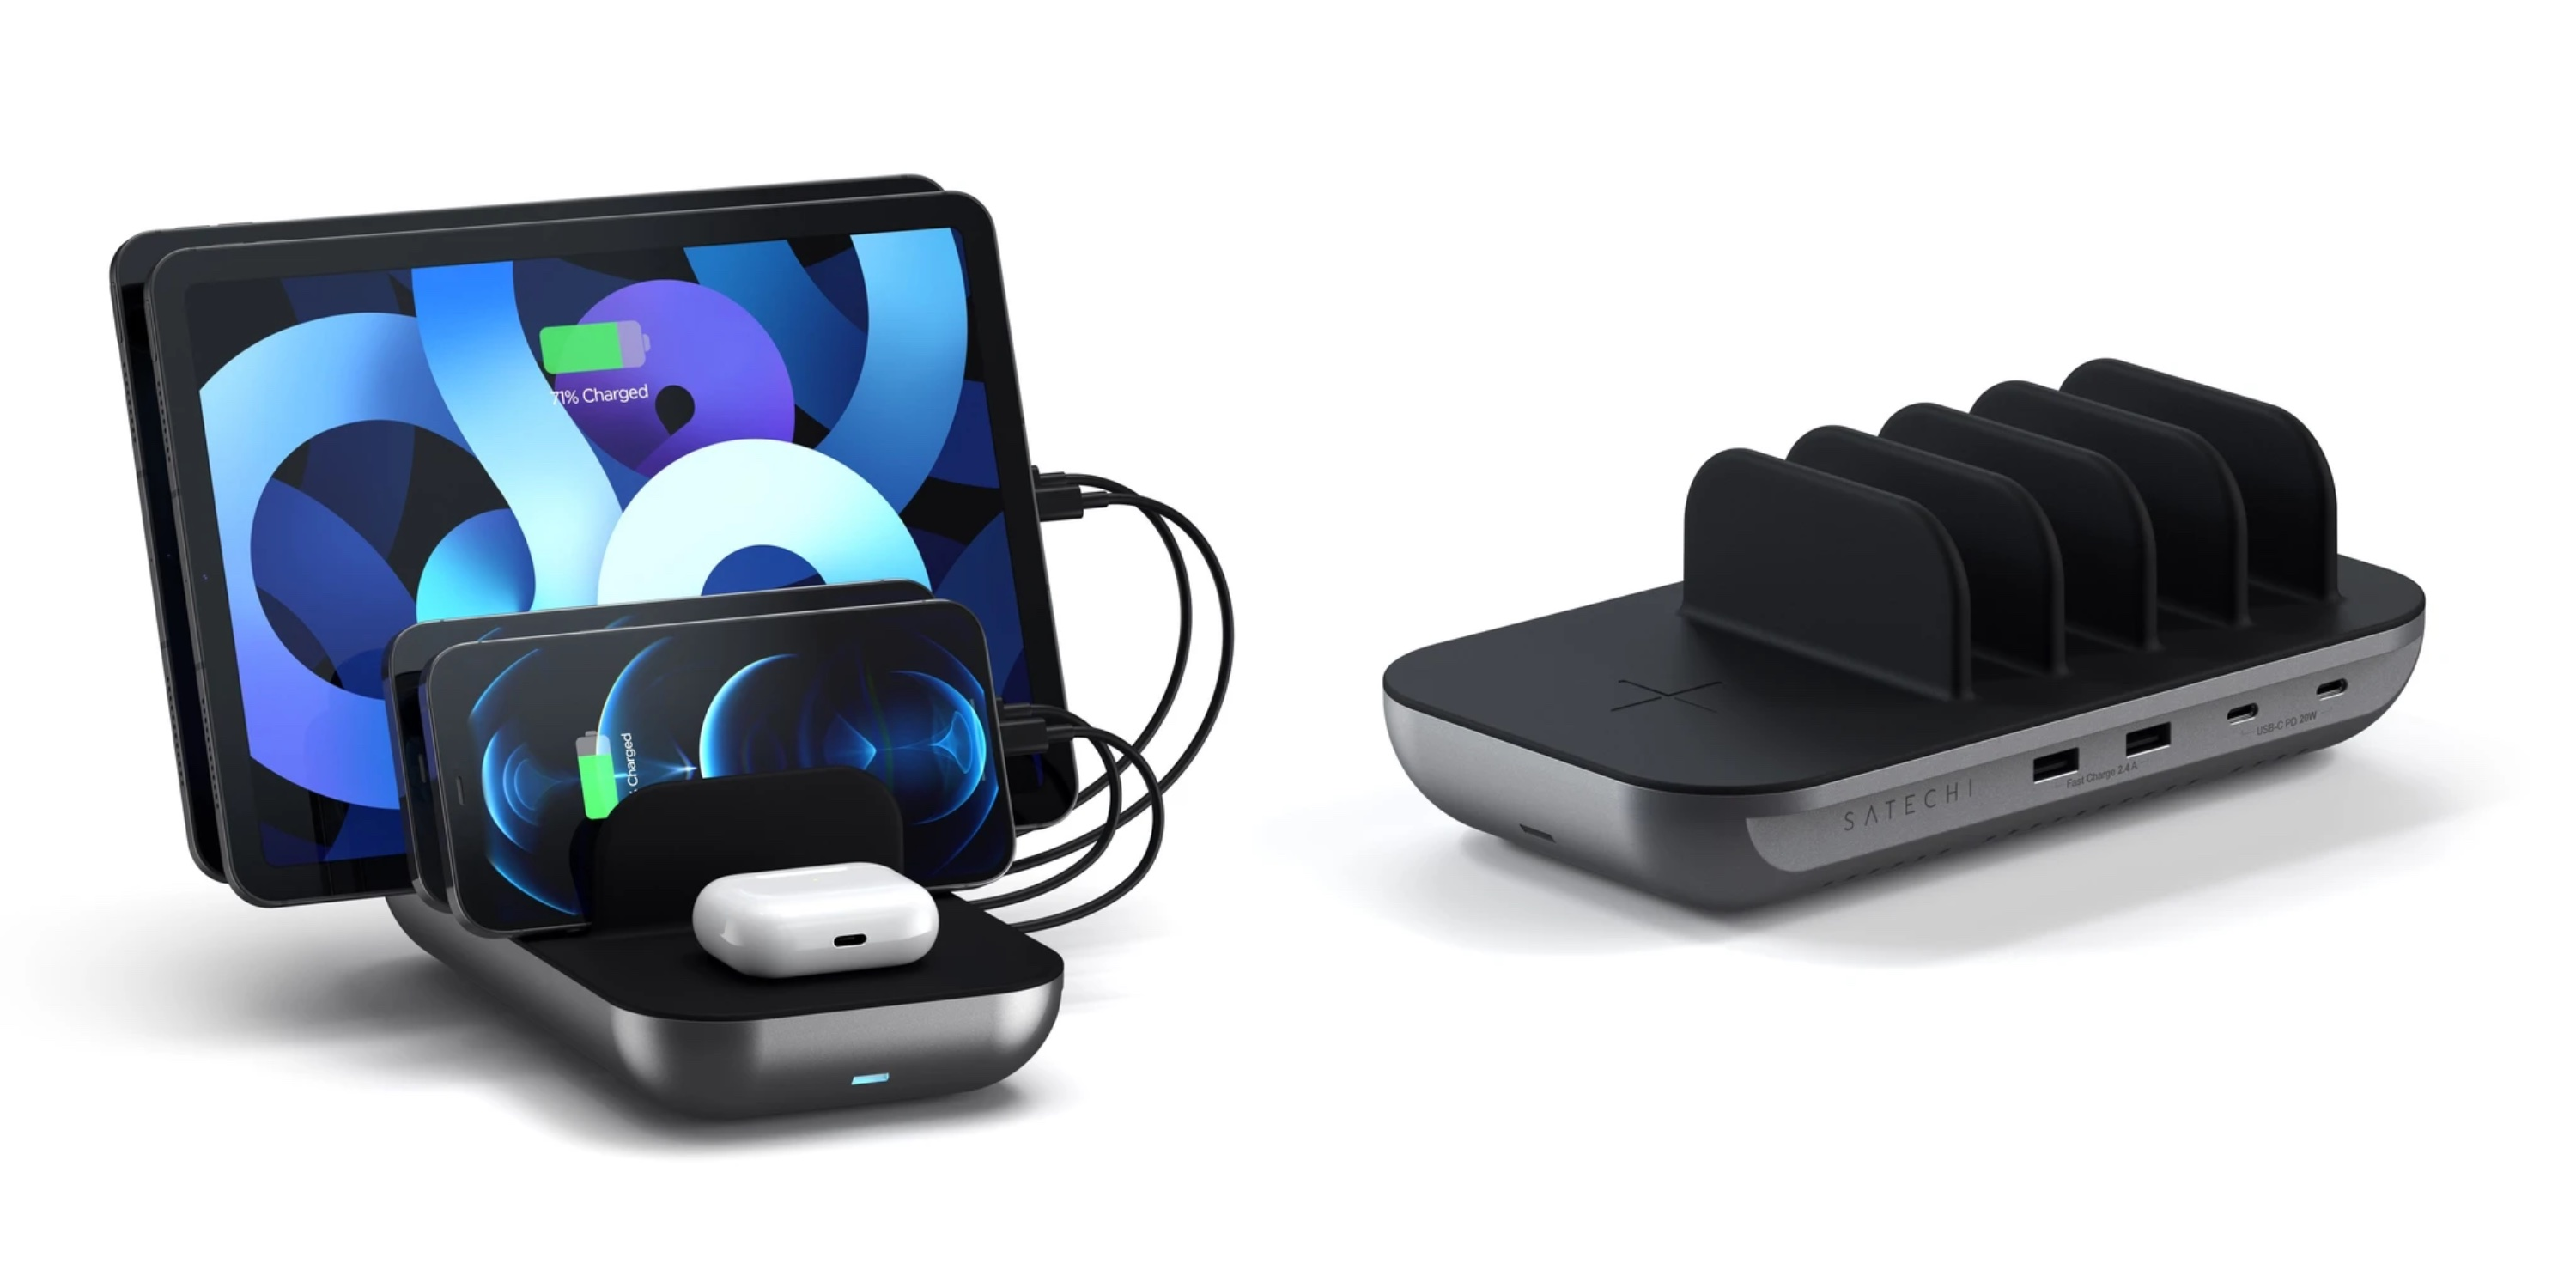 Best multi-device chargers for families with iPhone, iPad, more - Satechi Dock5